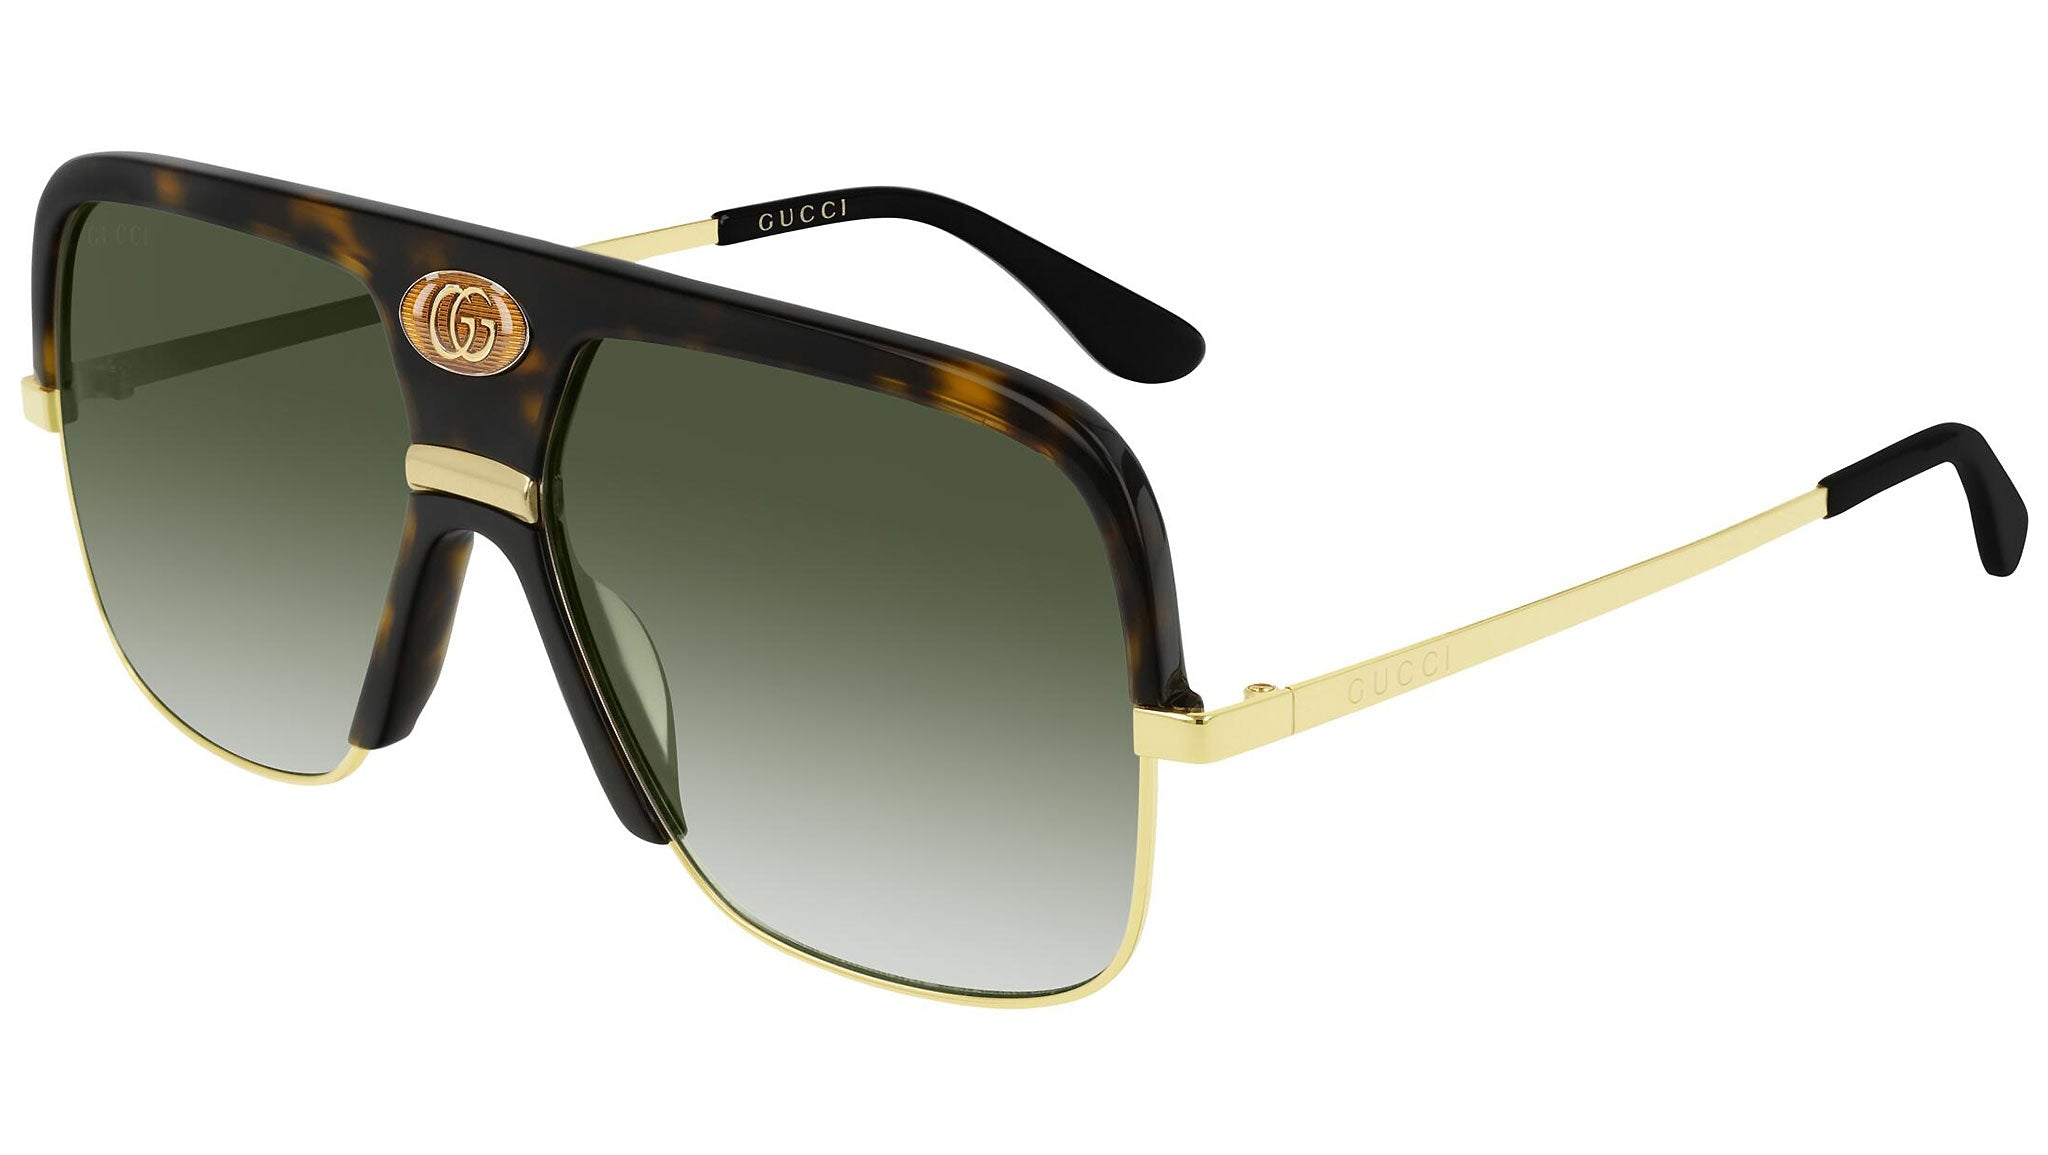 GG0478S gold havana and green